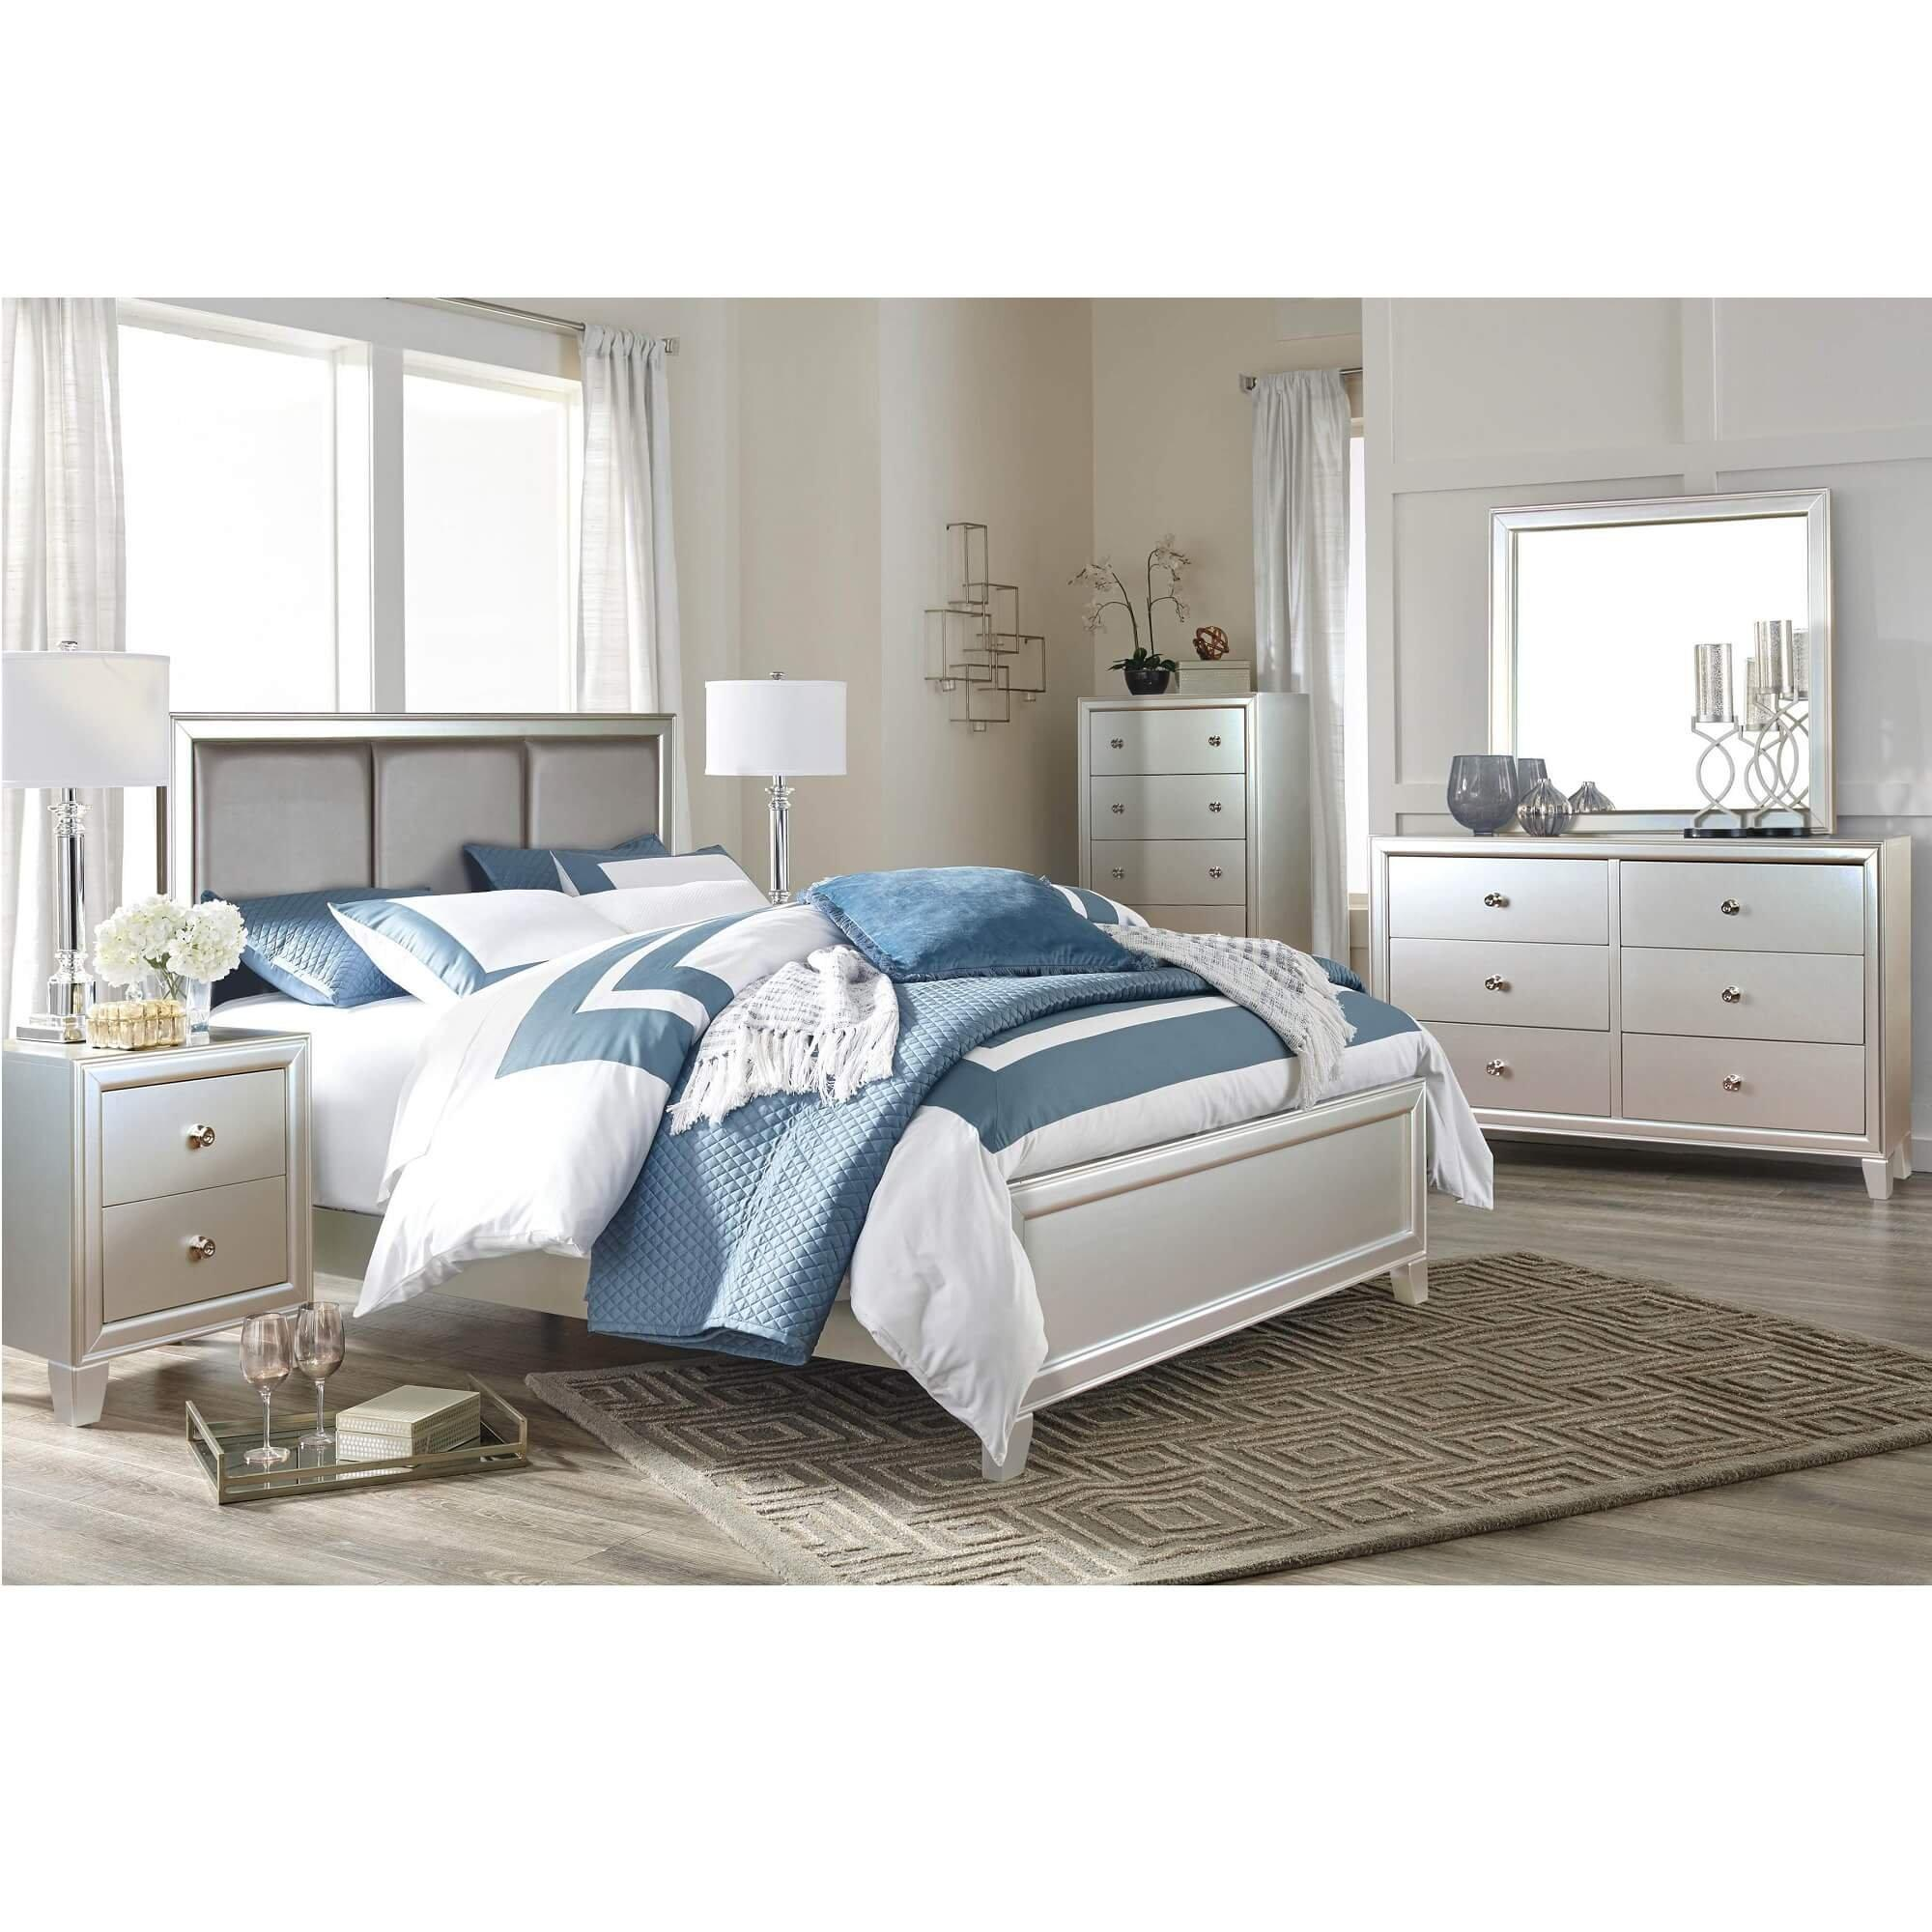 Rent To Own Riversedge Furniture 7 Piece Nova King Bedroom Set At Aaron S Today